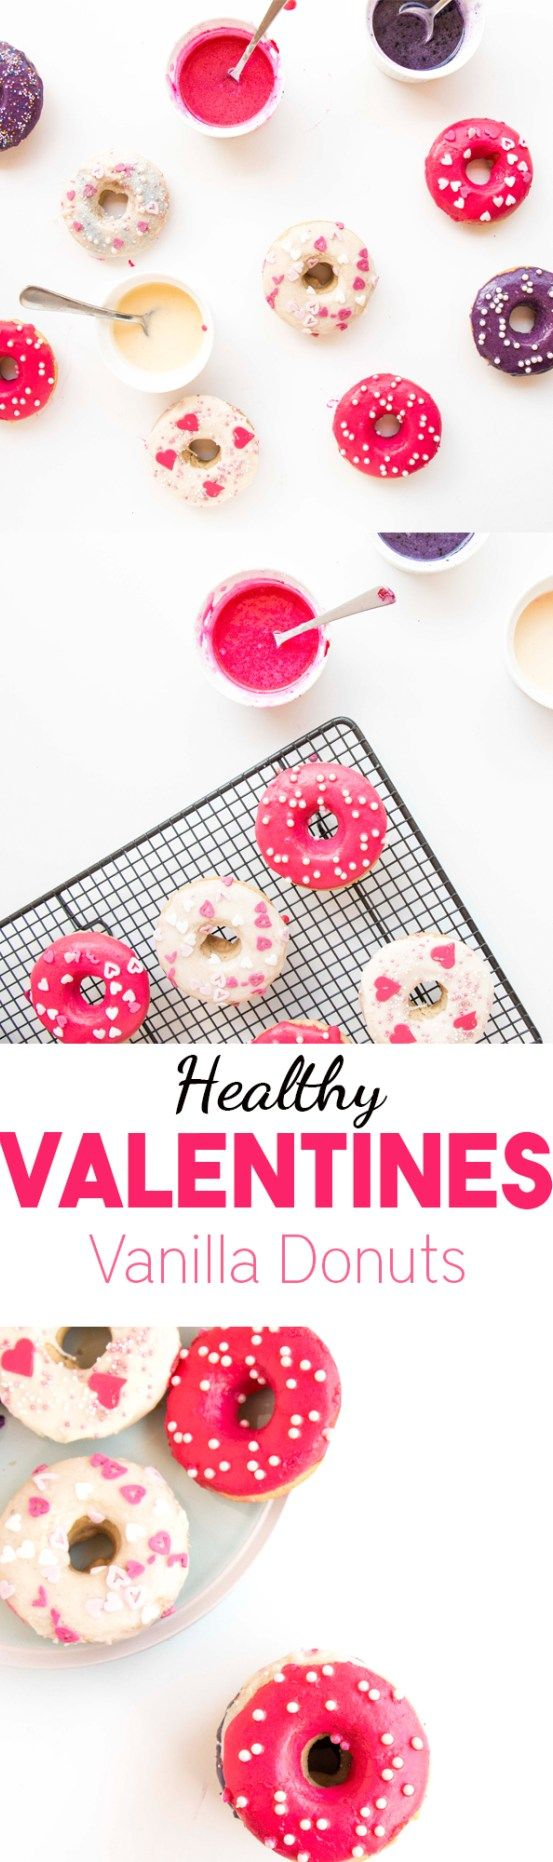 Healthy Valentines Vanilla Donuts. Vegan, low in fat and simply beautiful and delicious. Quick and easy to make baked donuts |